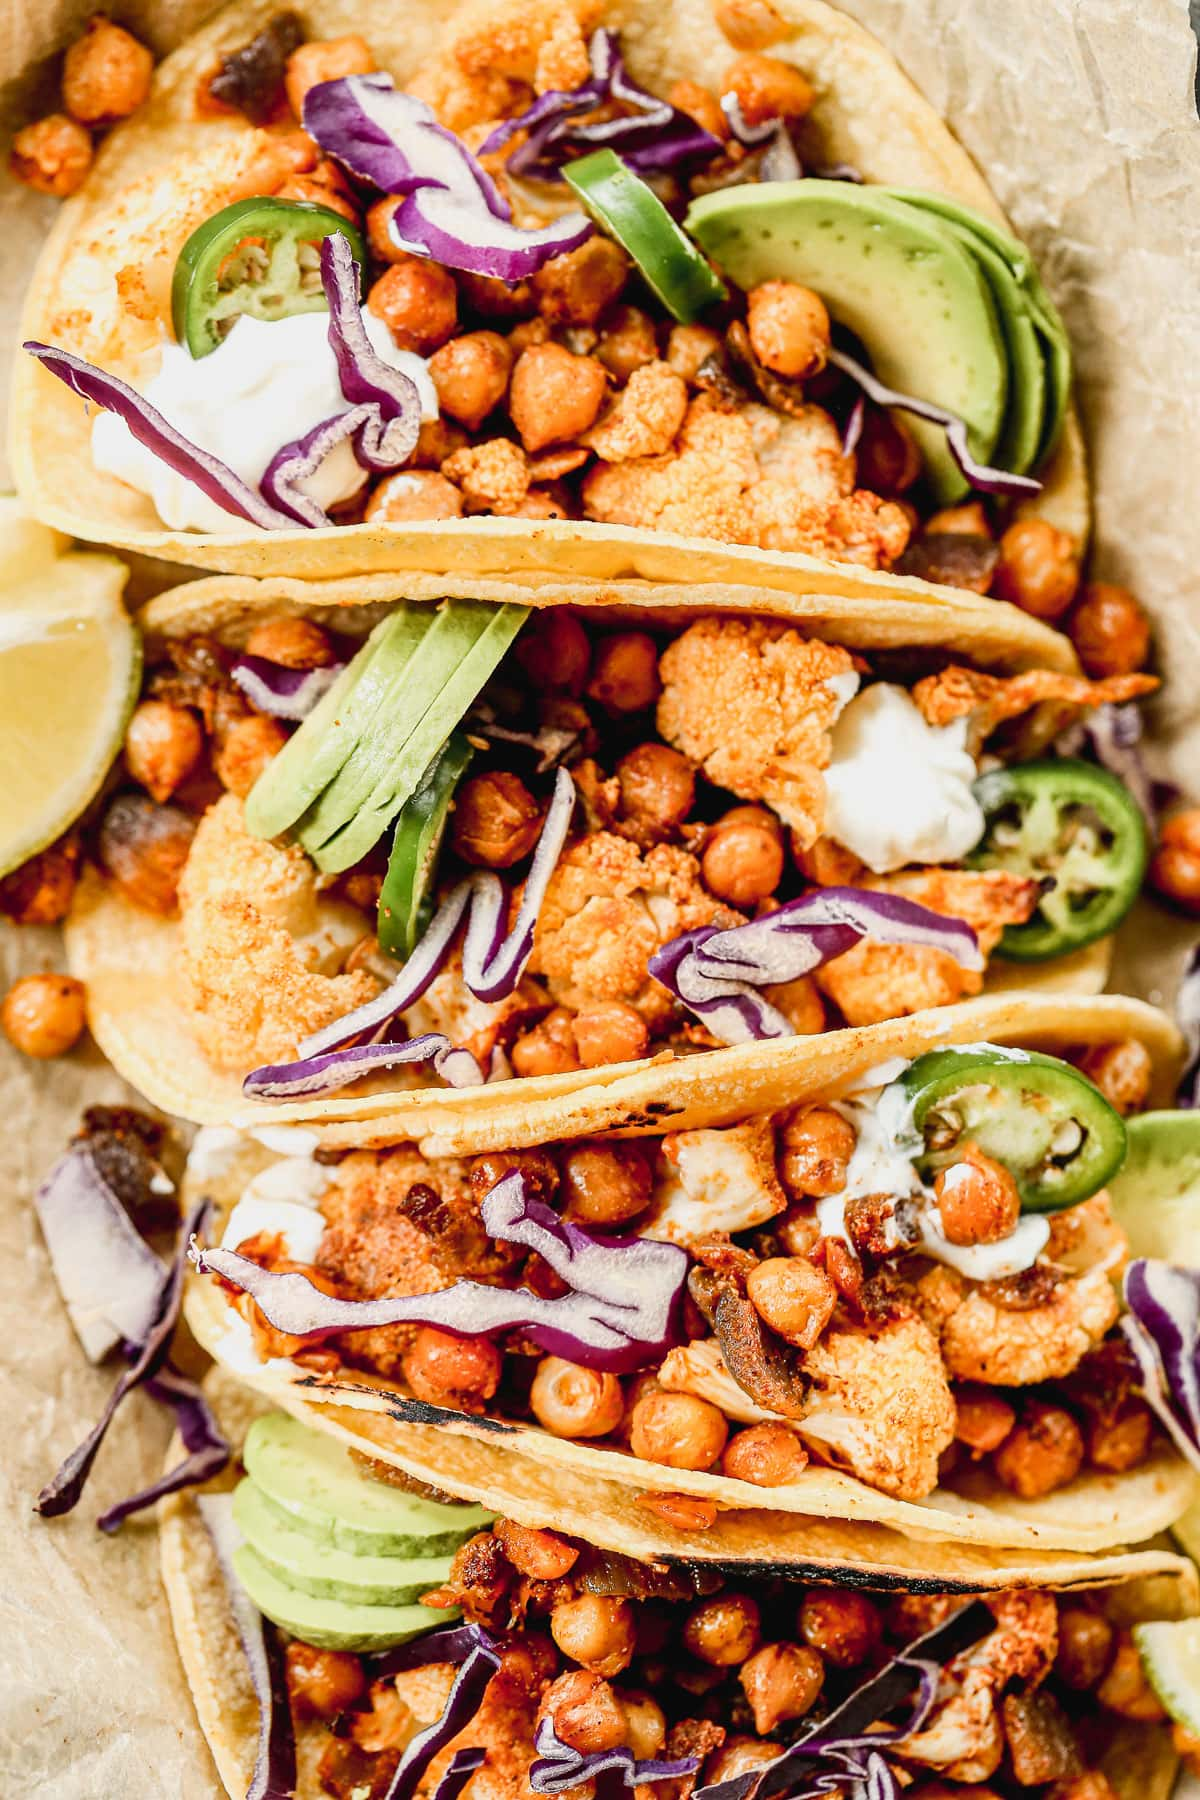 Crispy Chickpea Cauliflower Tacos: Spicy roasted cauliflower and chickpeas make the most delicious, low-fat vegan taco filling ever! {low carb, gluten free} @wellplated